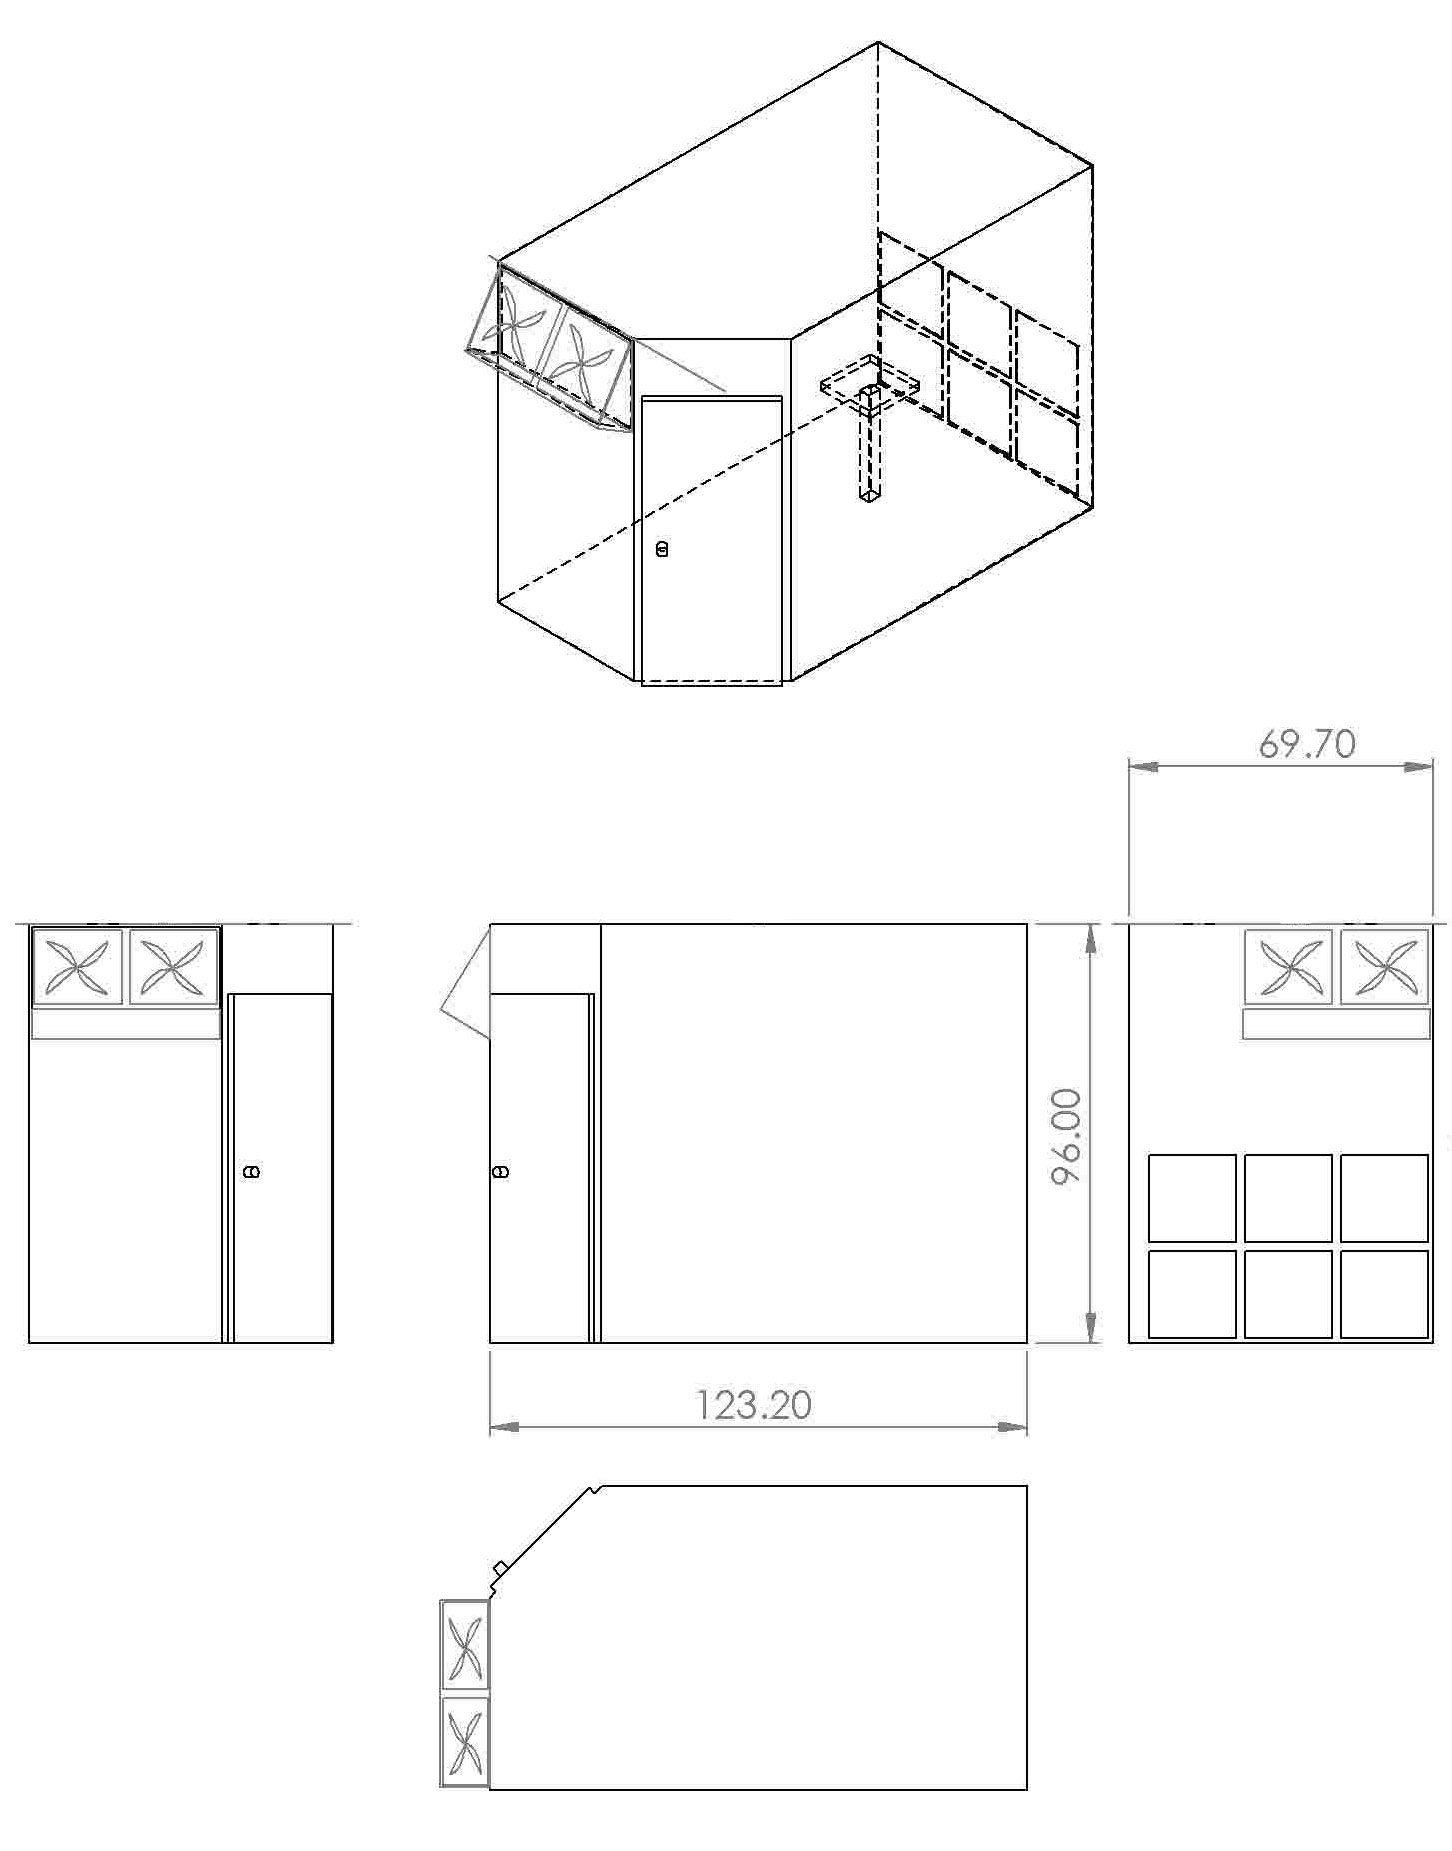 Plans for the paint booth